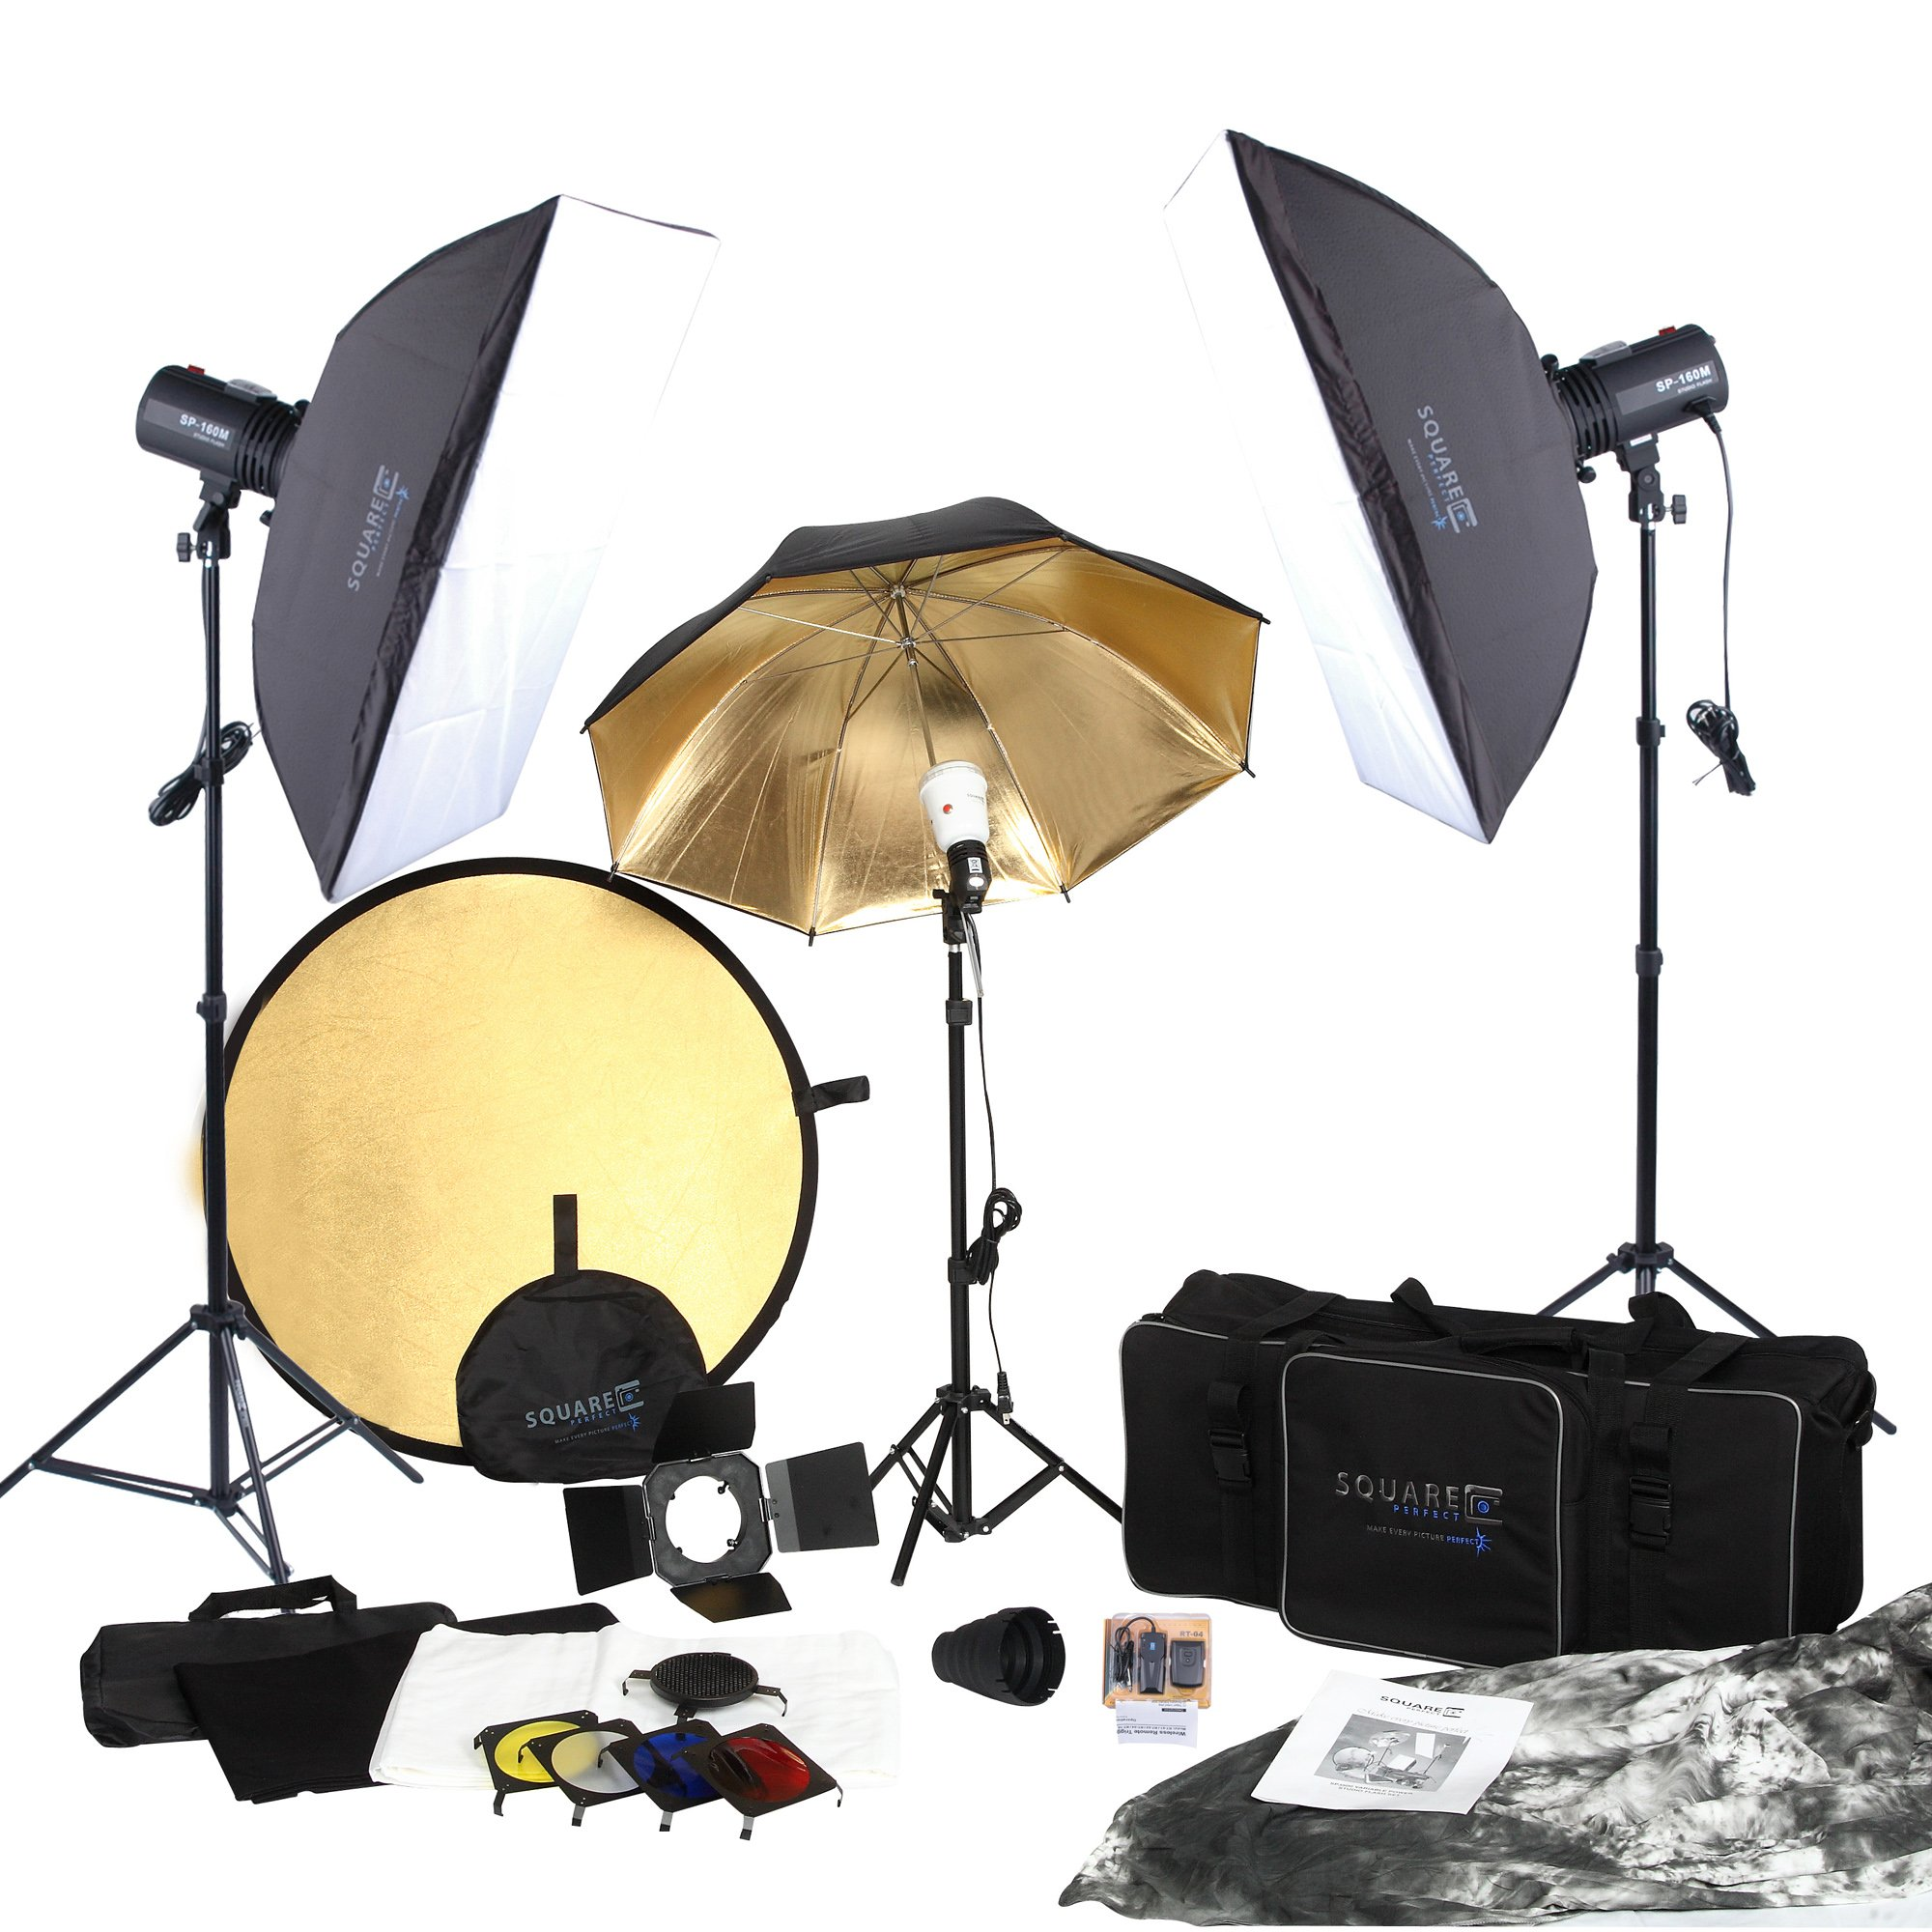 Square Perfect 5080 SP3500 FLASH KIT Complete Portrait Studio Kit with Flashes Softboxes Gels and Barn Door by SQUARE PERFECT